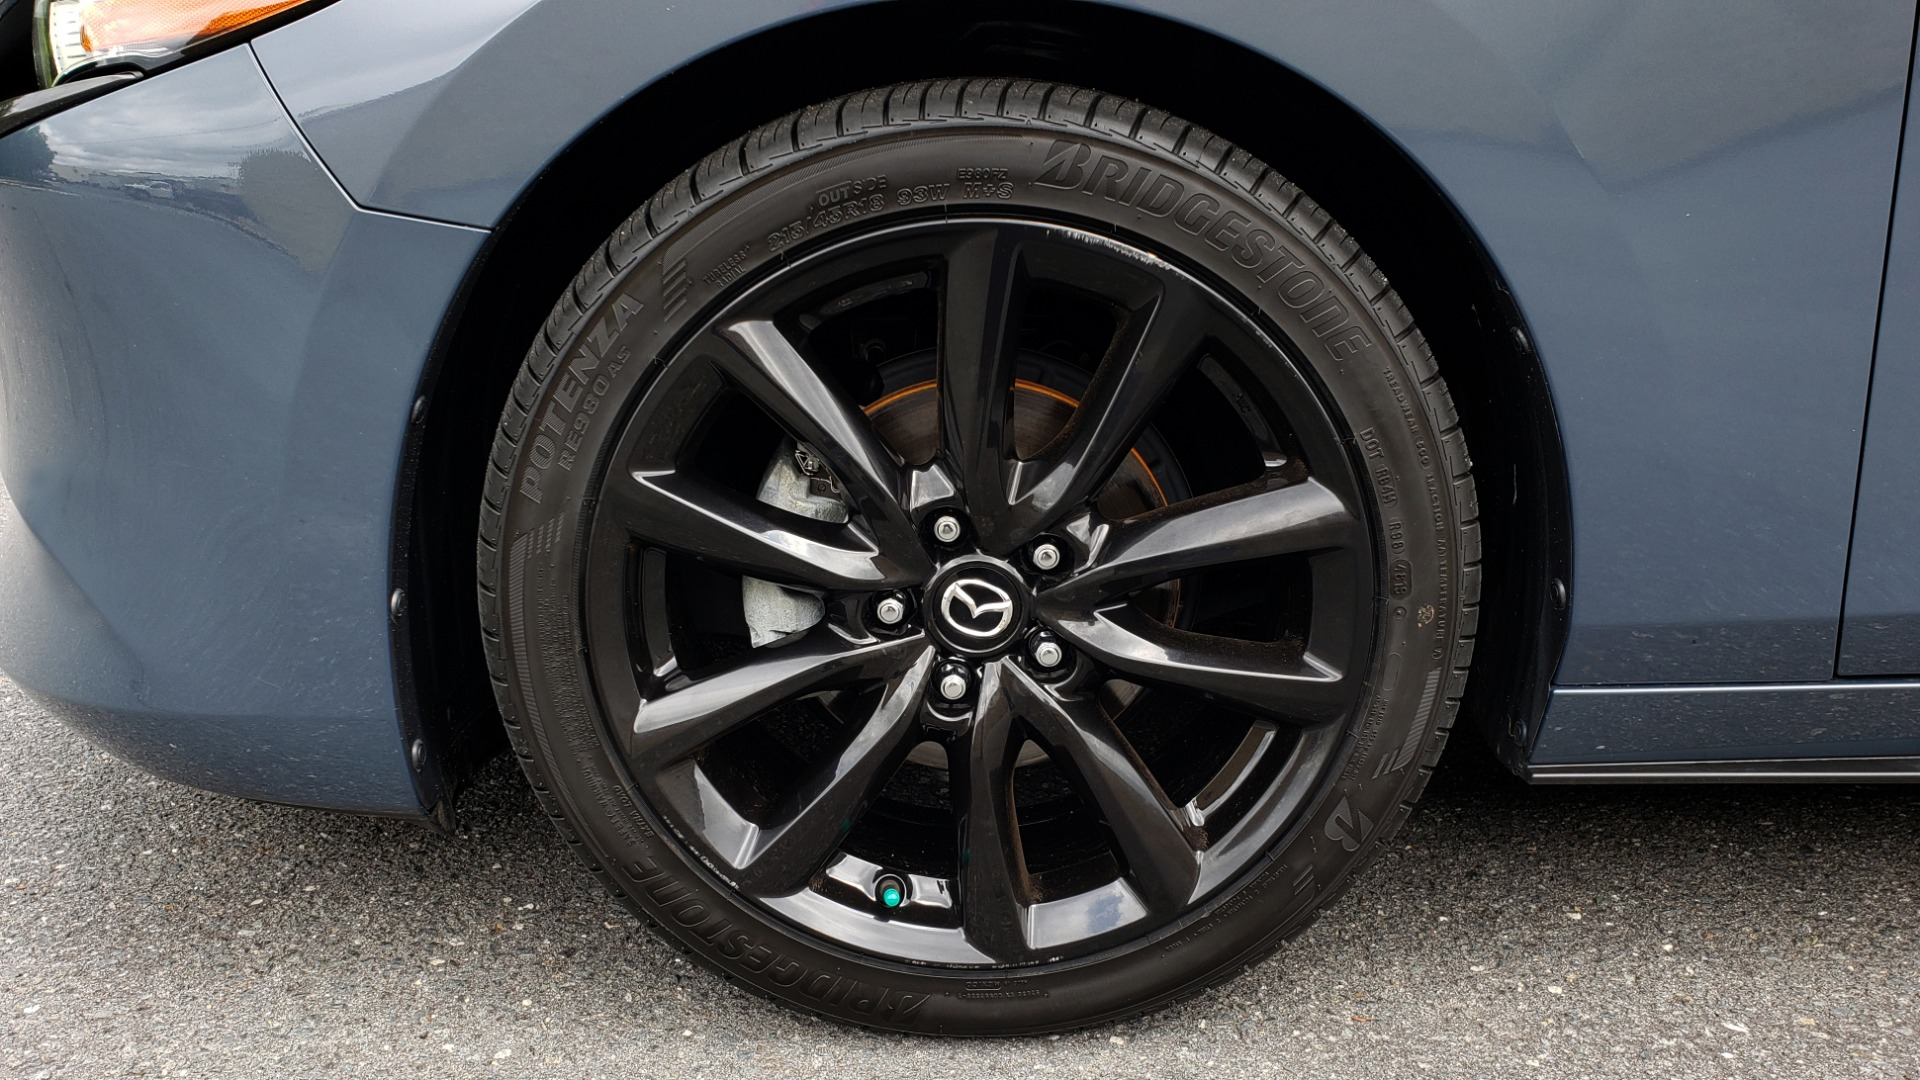 Used 2019 Mazda MAZDA3 HATCHBACK PREMIUM PKG / AUTO / 18IN BLACK ALLOY WHEELS / BOSE / LEATHER for sale Sold at Formula Imports in Charlotte NC 28227 70